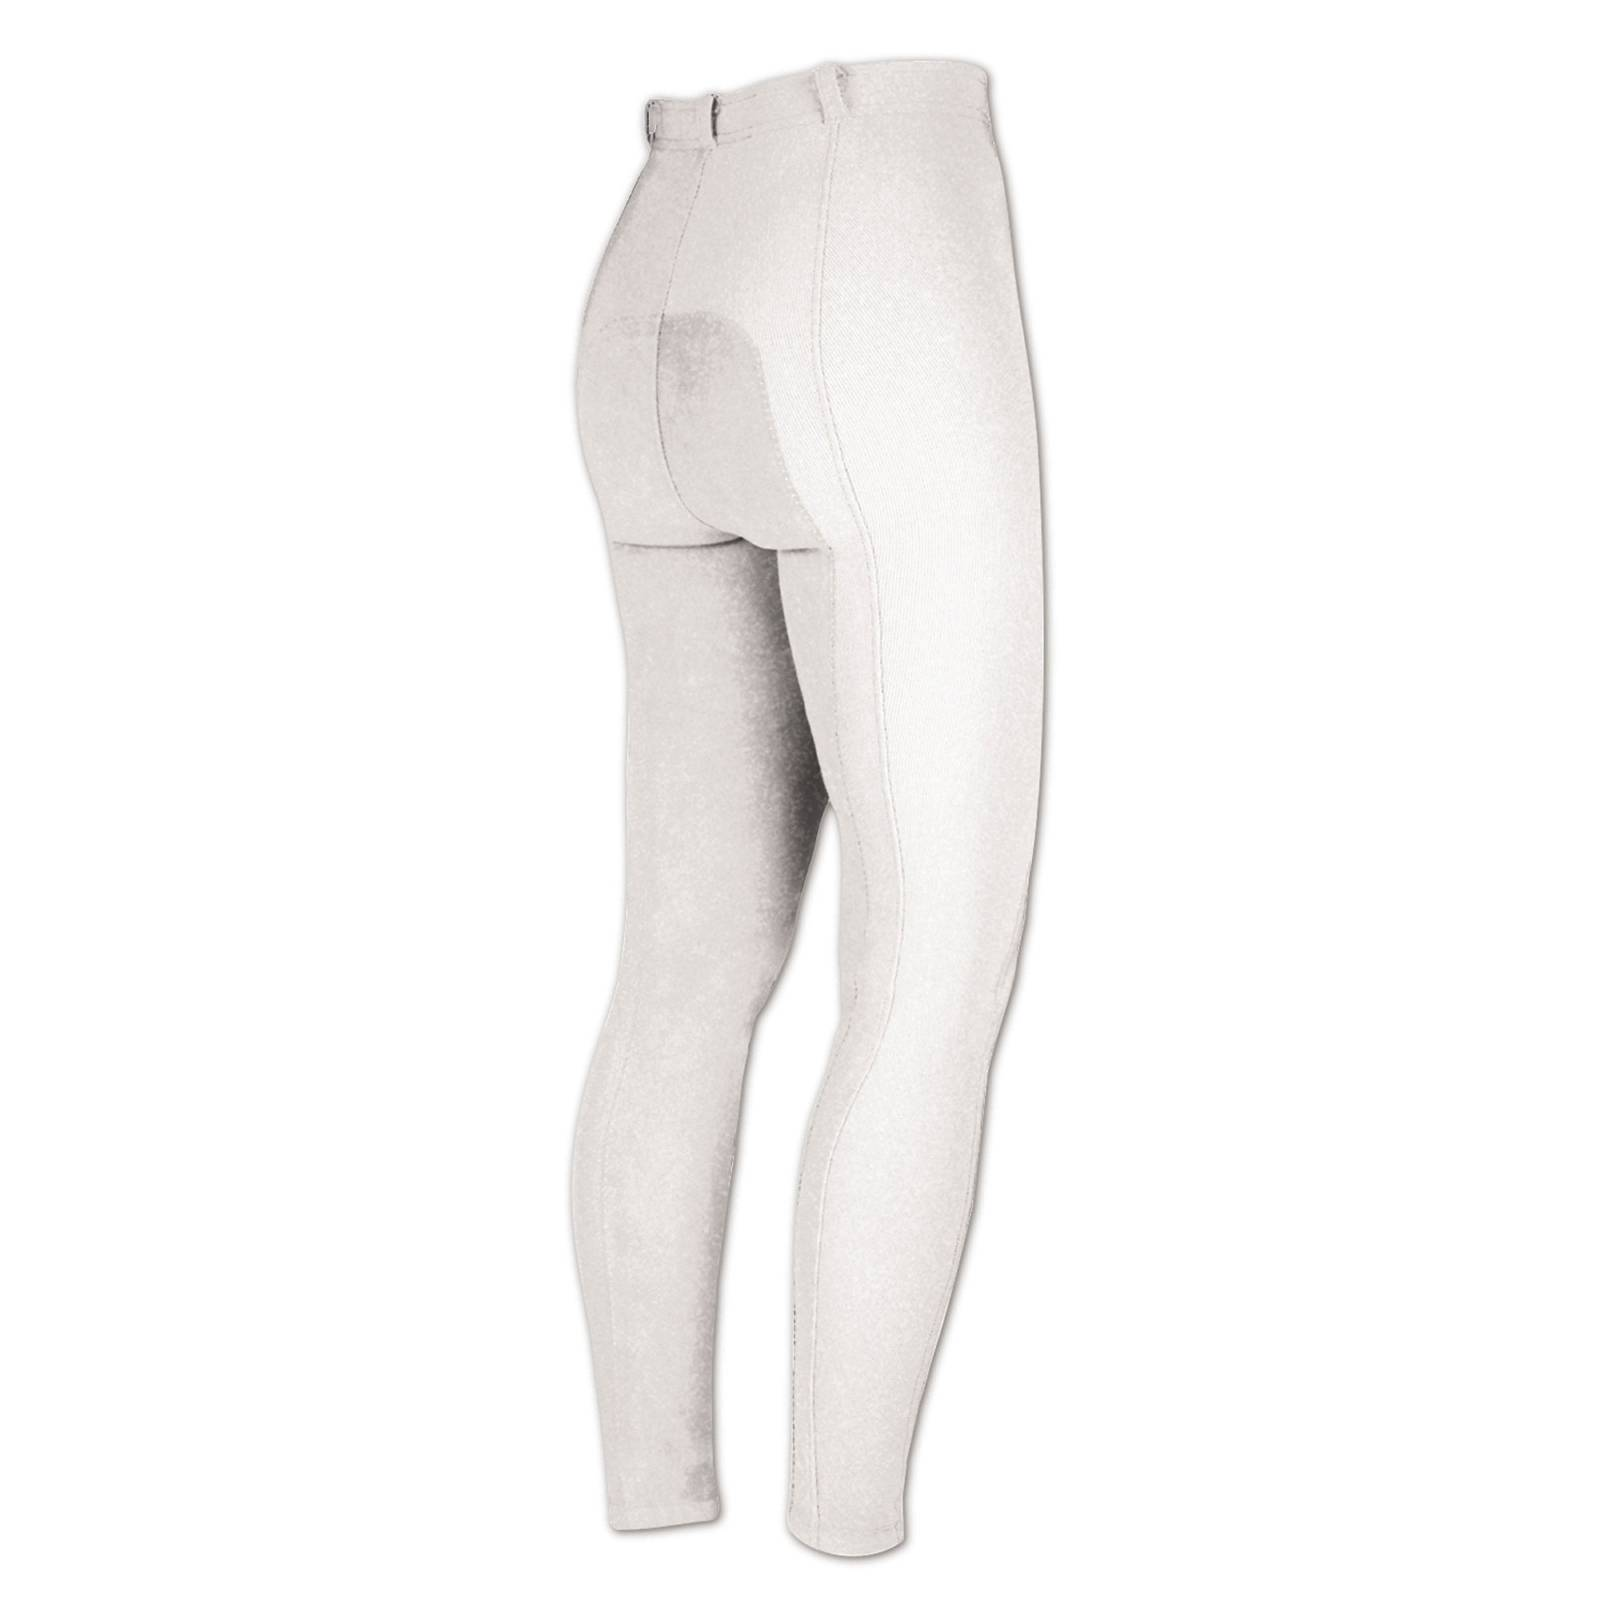 Irideon Kids Cadence Full Seat Riding Breeches